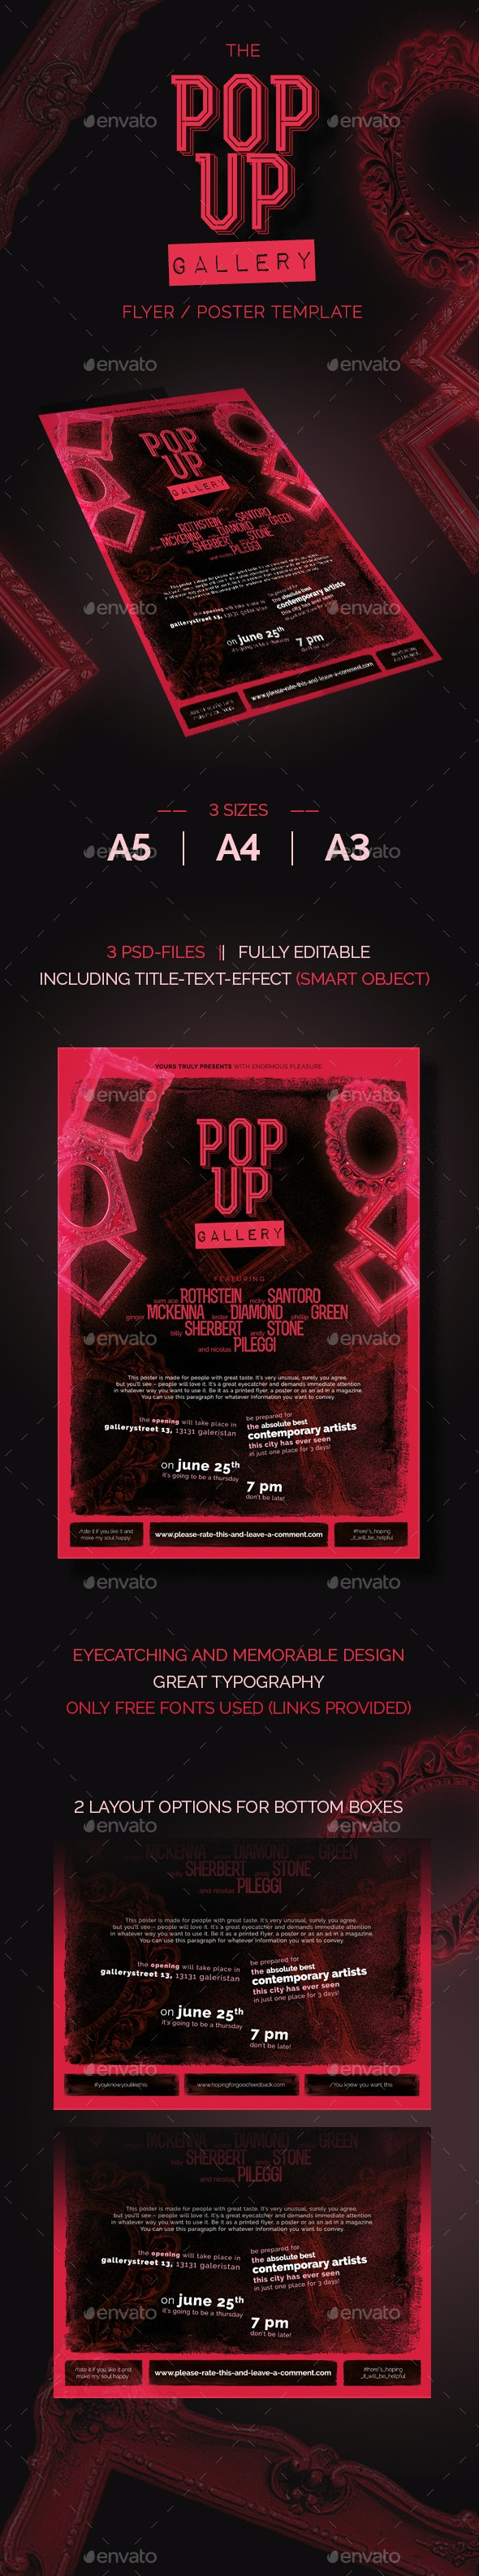 The Pop-Up-Gallery Flyer - Events Flyers